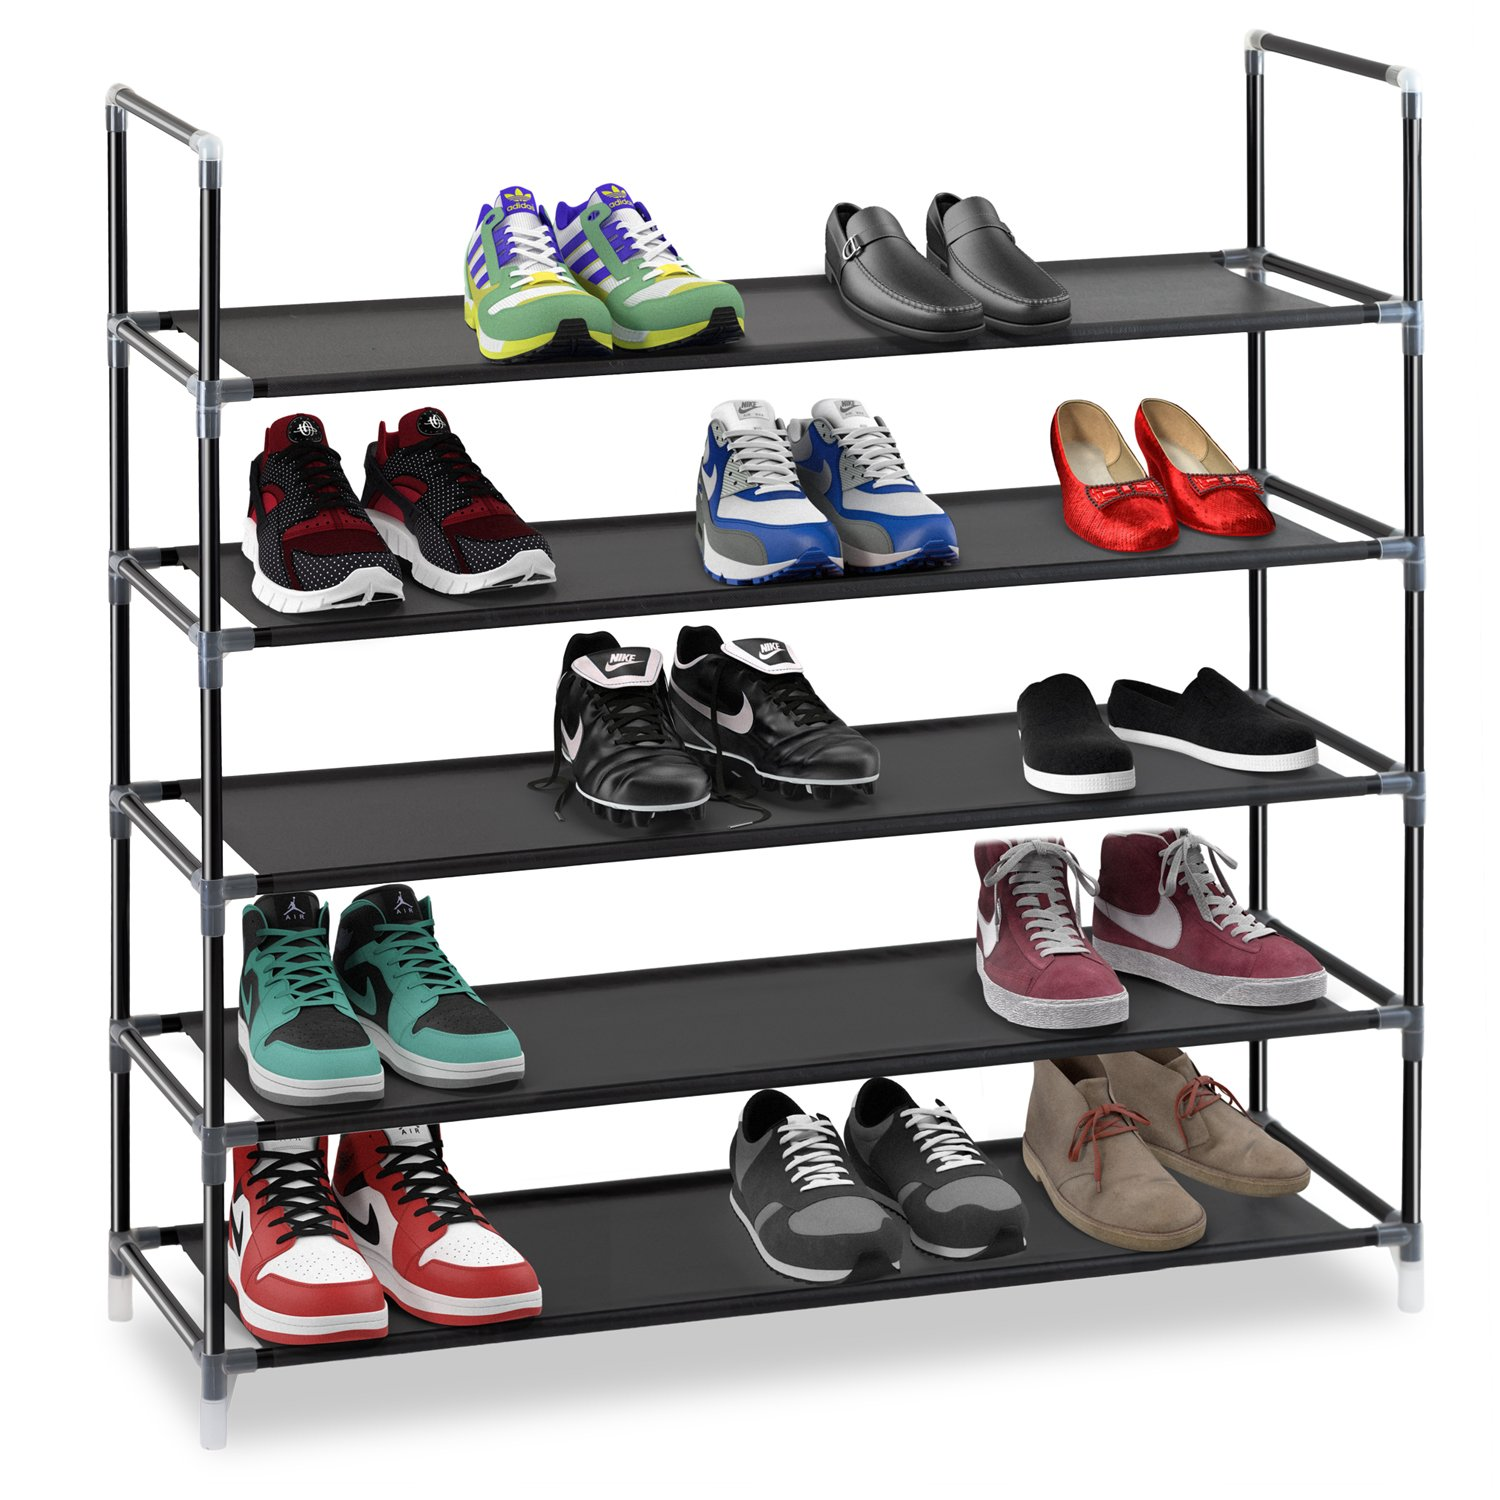 halter 5 tier stainless steel shoe rack shoe storage stackable shelves holds 15